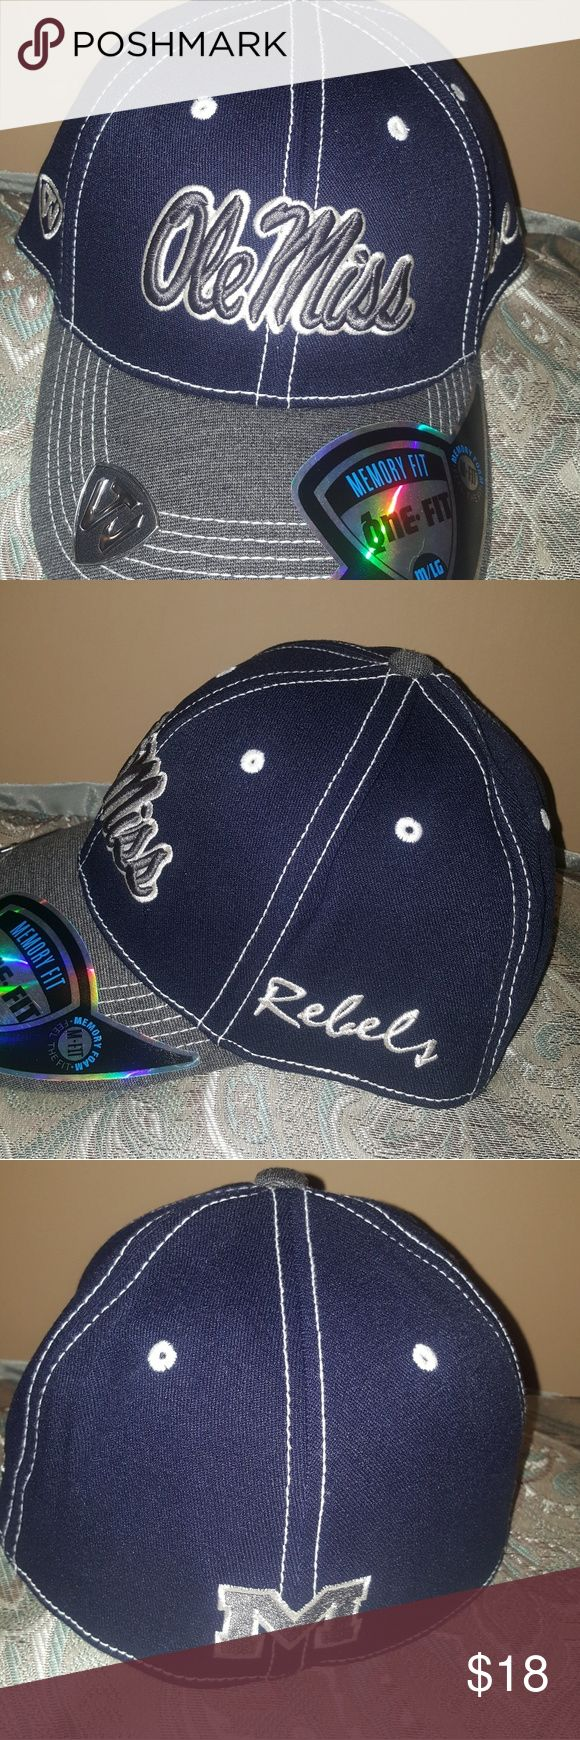 Ole Miss Rebels Cap NEW Navy and gray ole miss rebel cap size M/L memory fit Accessories Hats